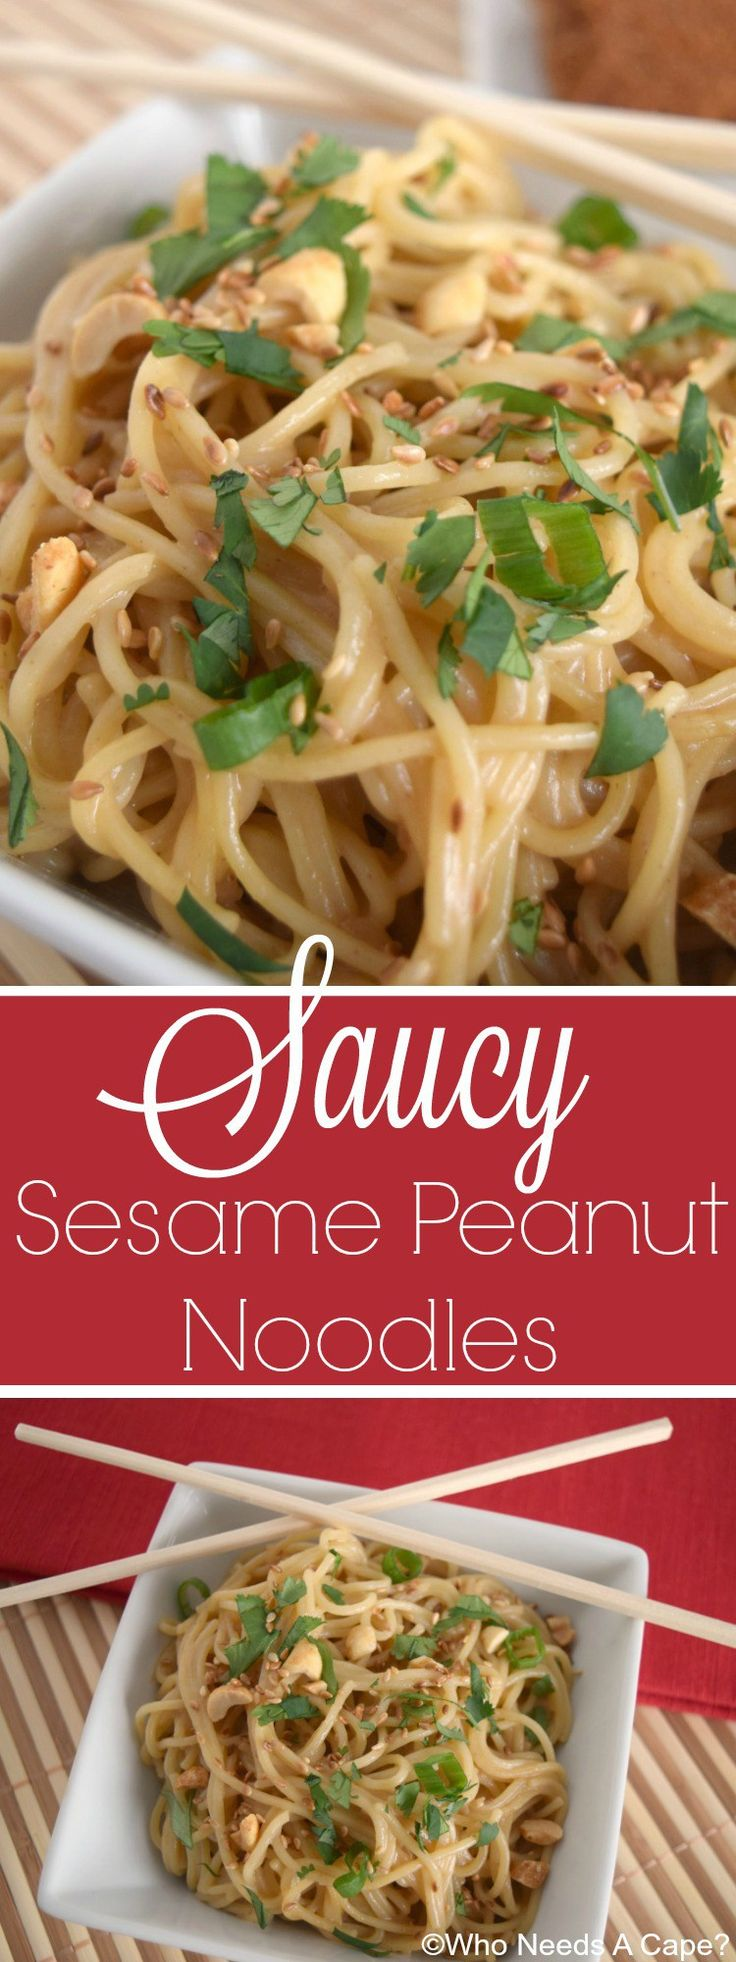 Ready in a snap these flavorful Saucy Sesame Peanut Noodles are the perfect…